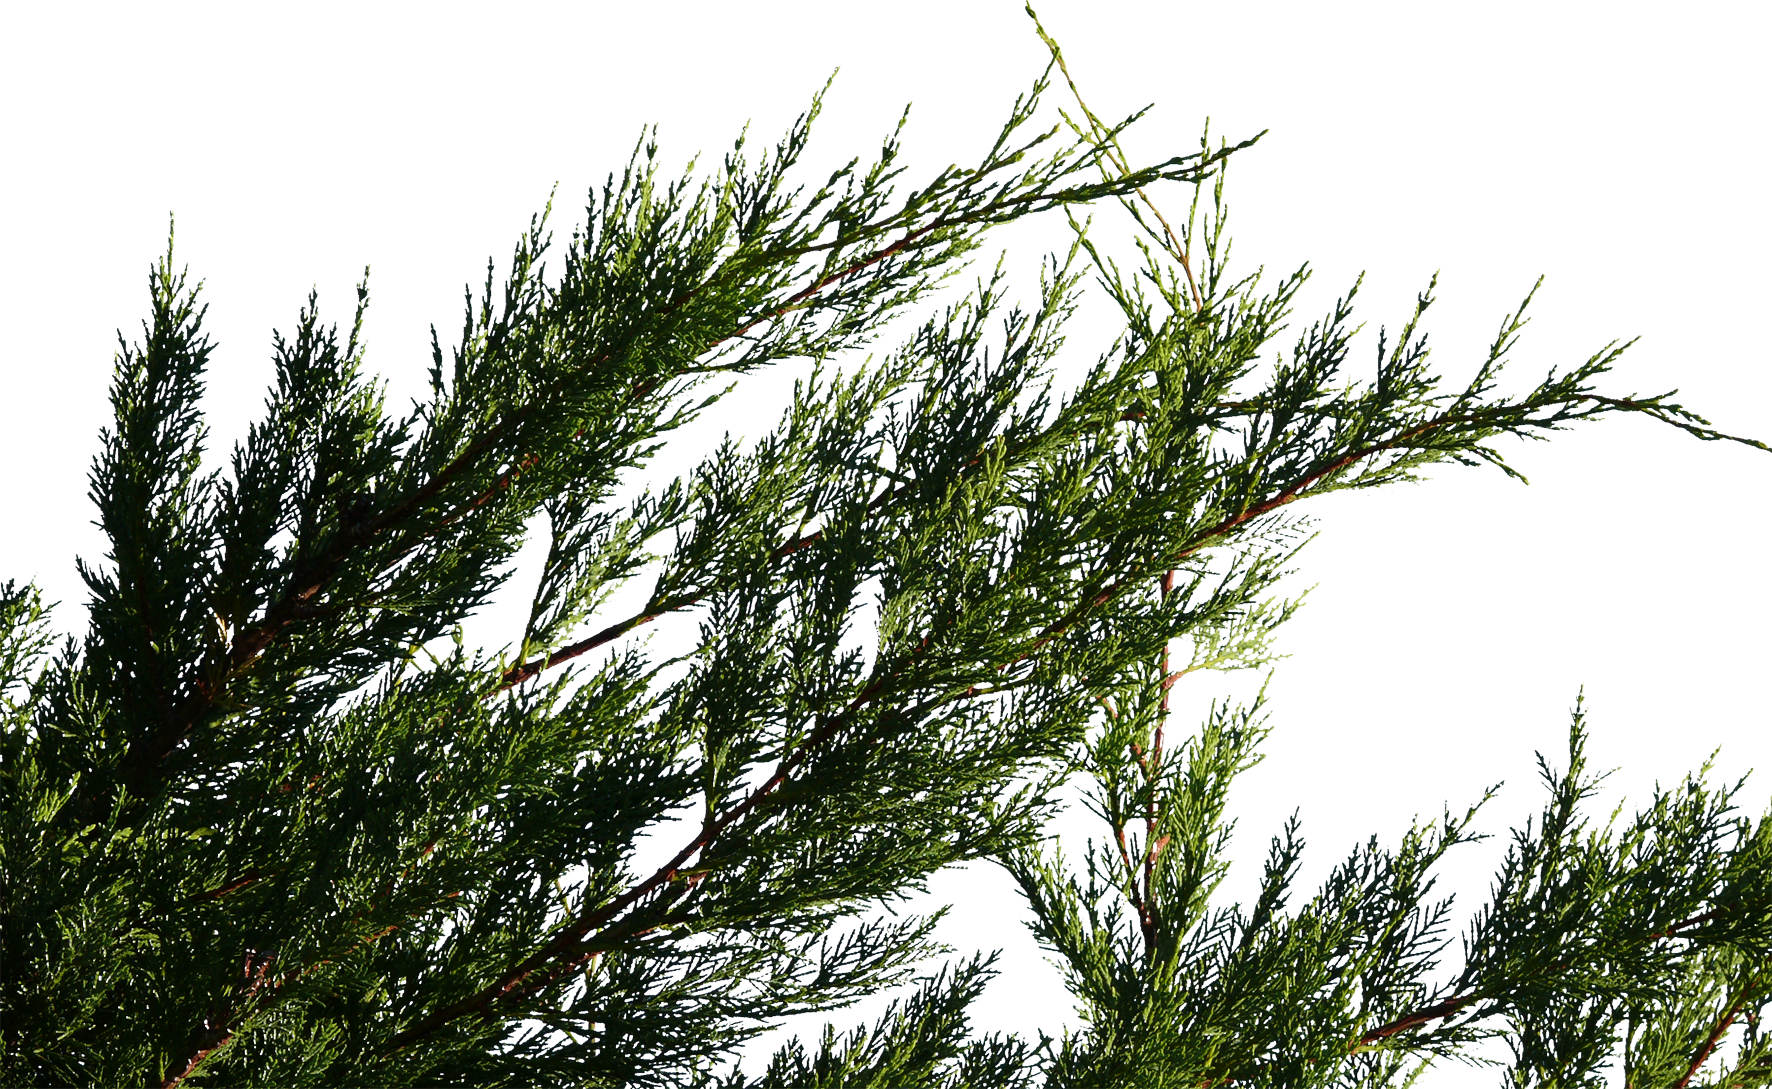 conifer branch 01 free texture download by 3dxo com